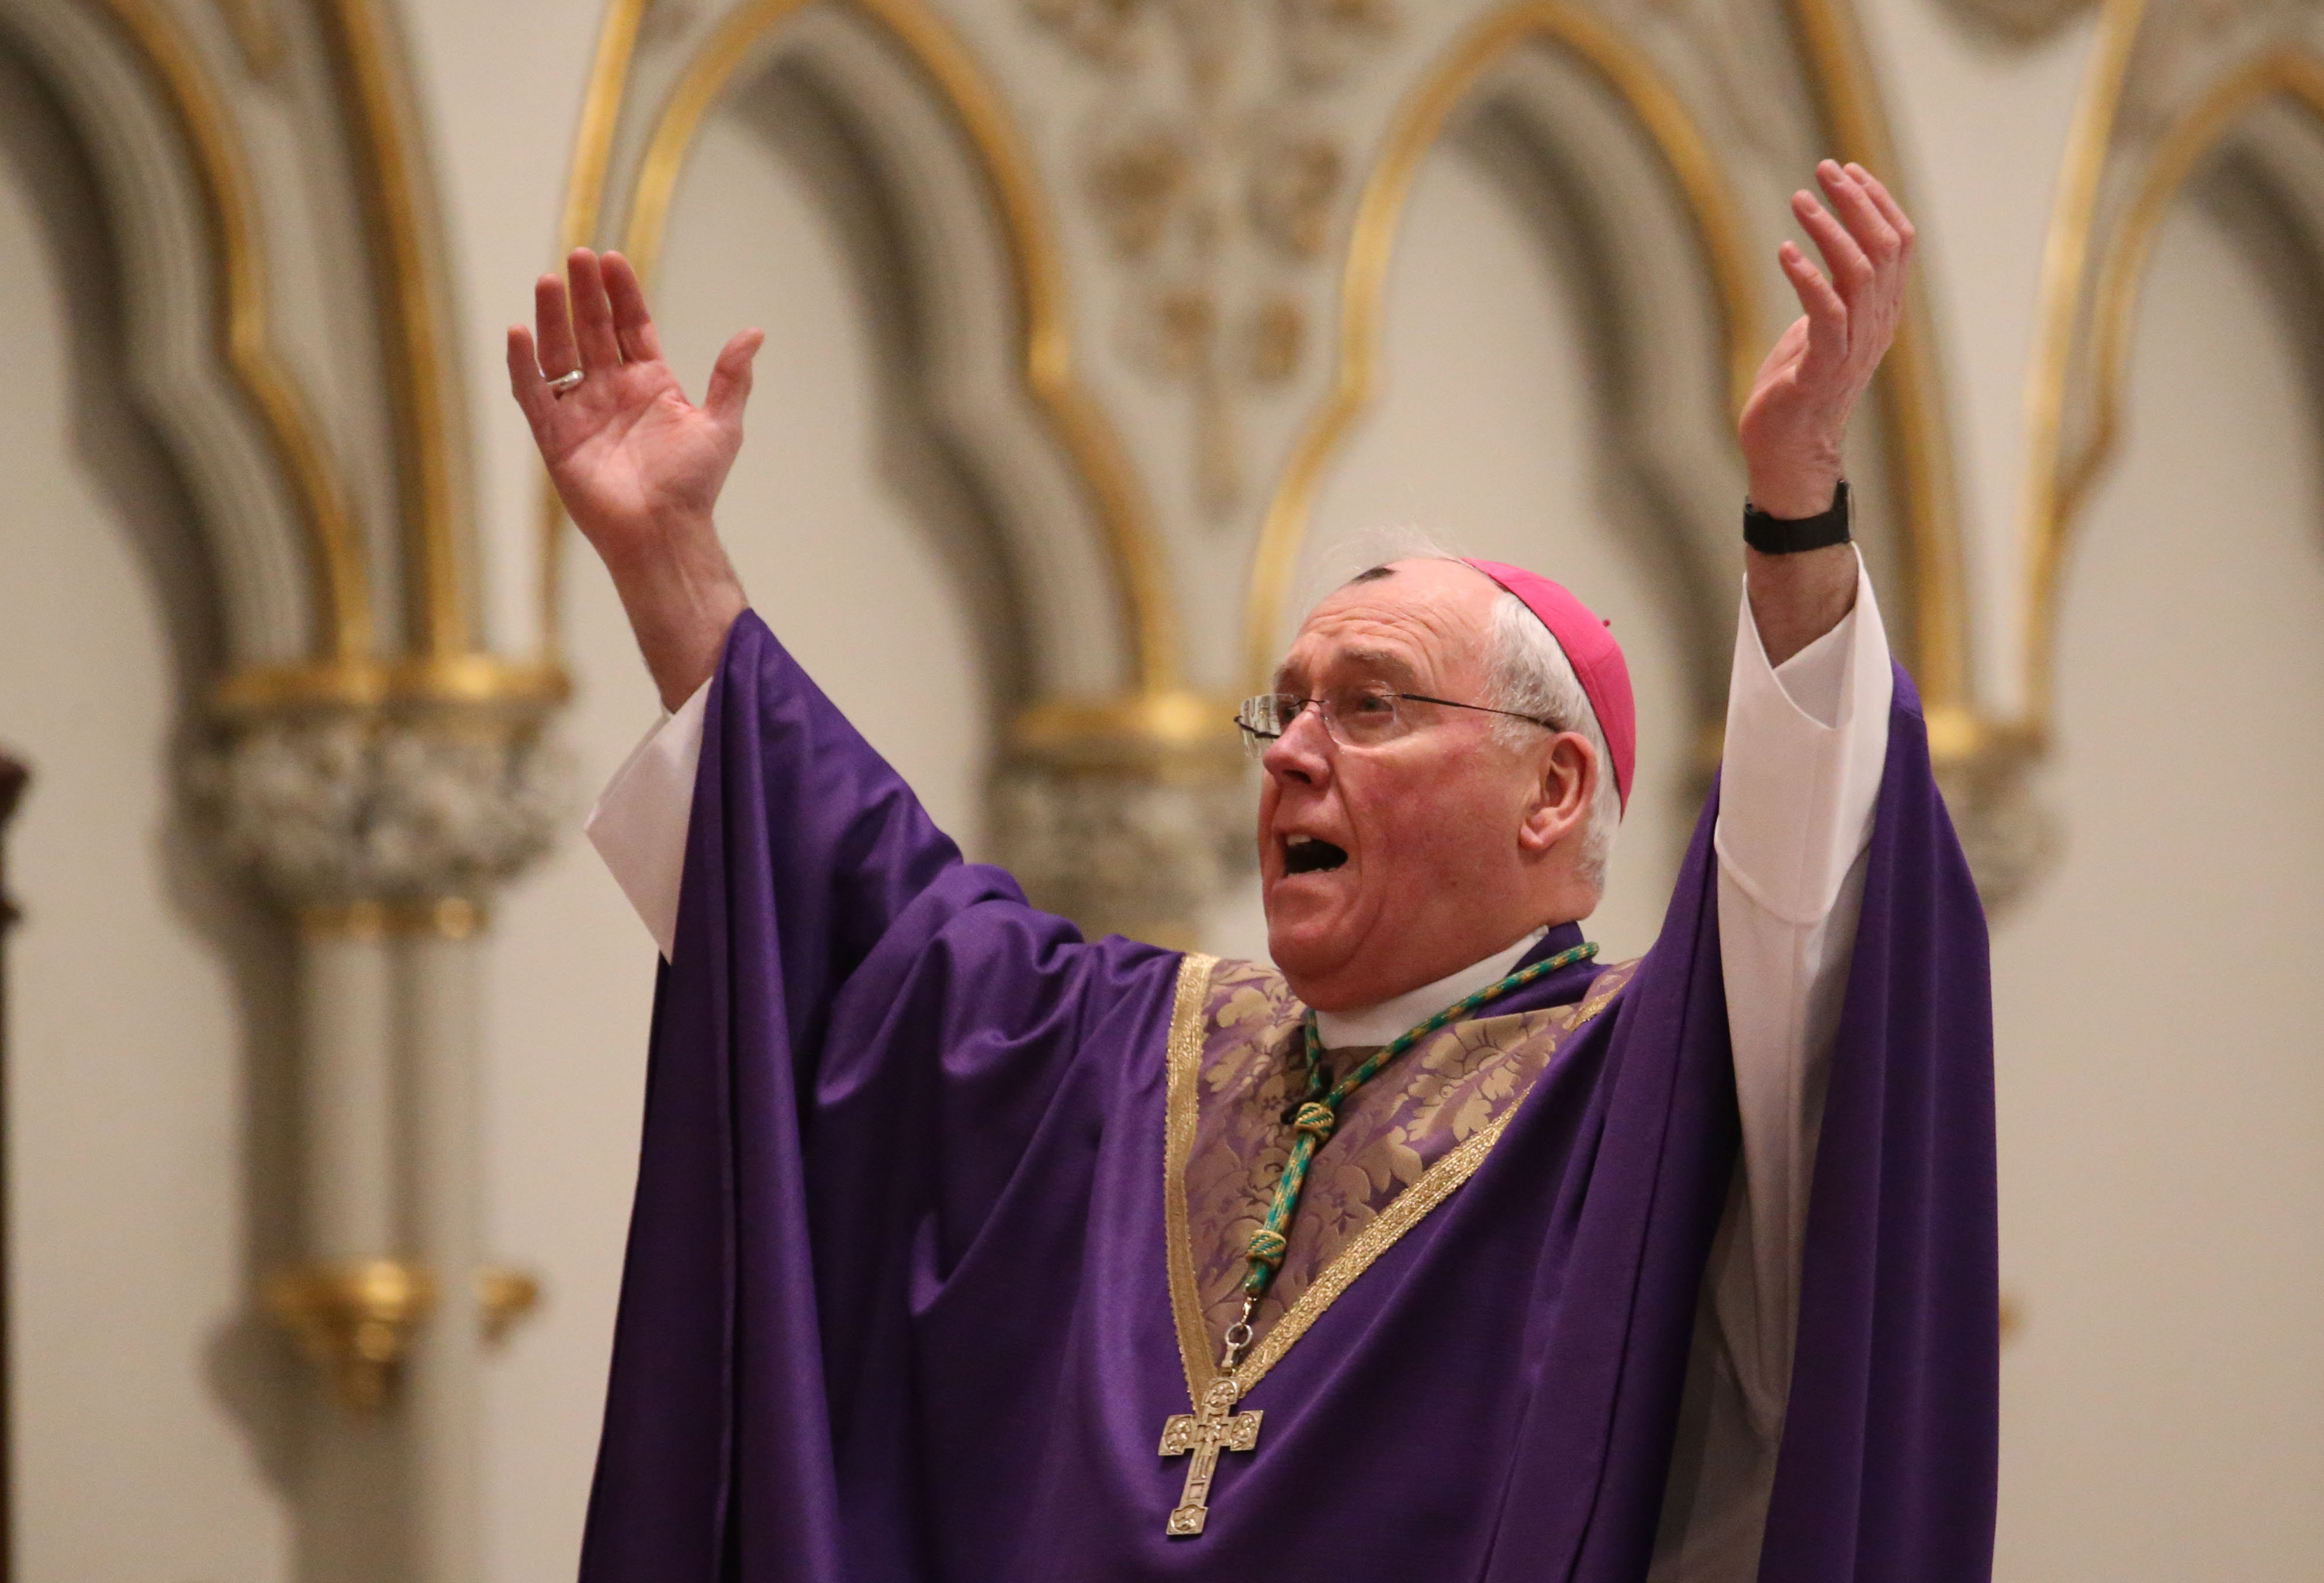 Bishop Richard Malone celebrates Mass and distributes ashes at St. Joseph Cathedral in Buffalo on Ash Wednesday, March 1, 2017.  (Sharon Cantillon/Buffalo News)